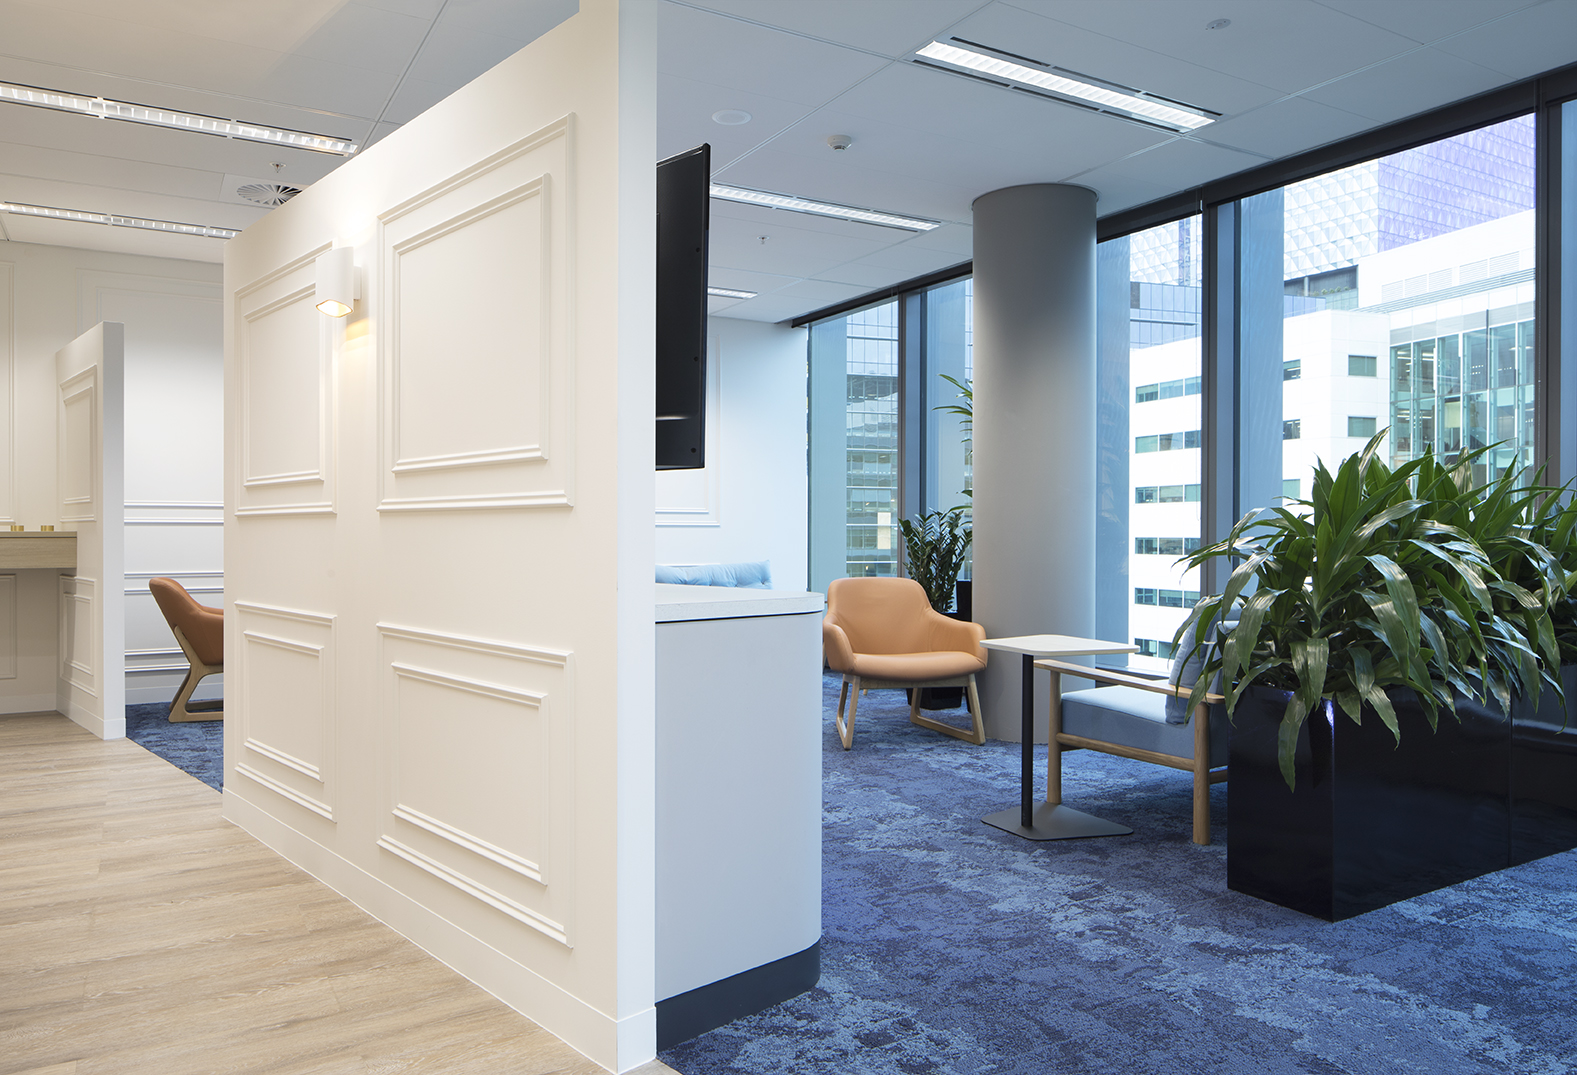 Breakout areas are designed to take advantage of natural light.